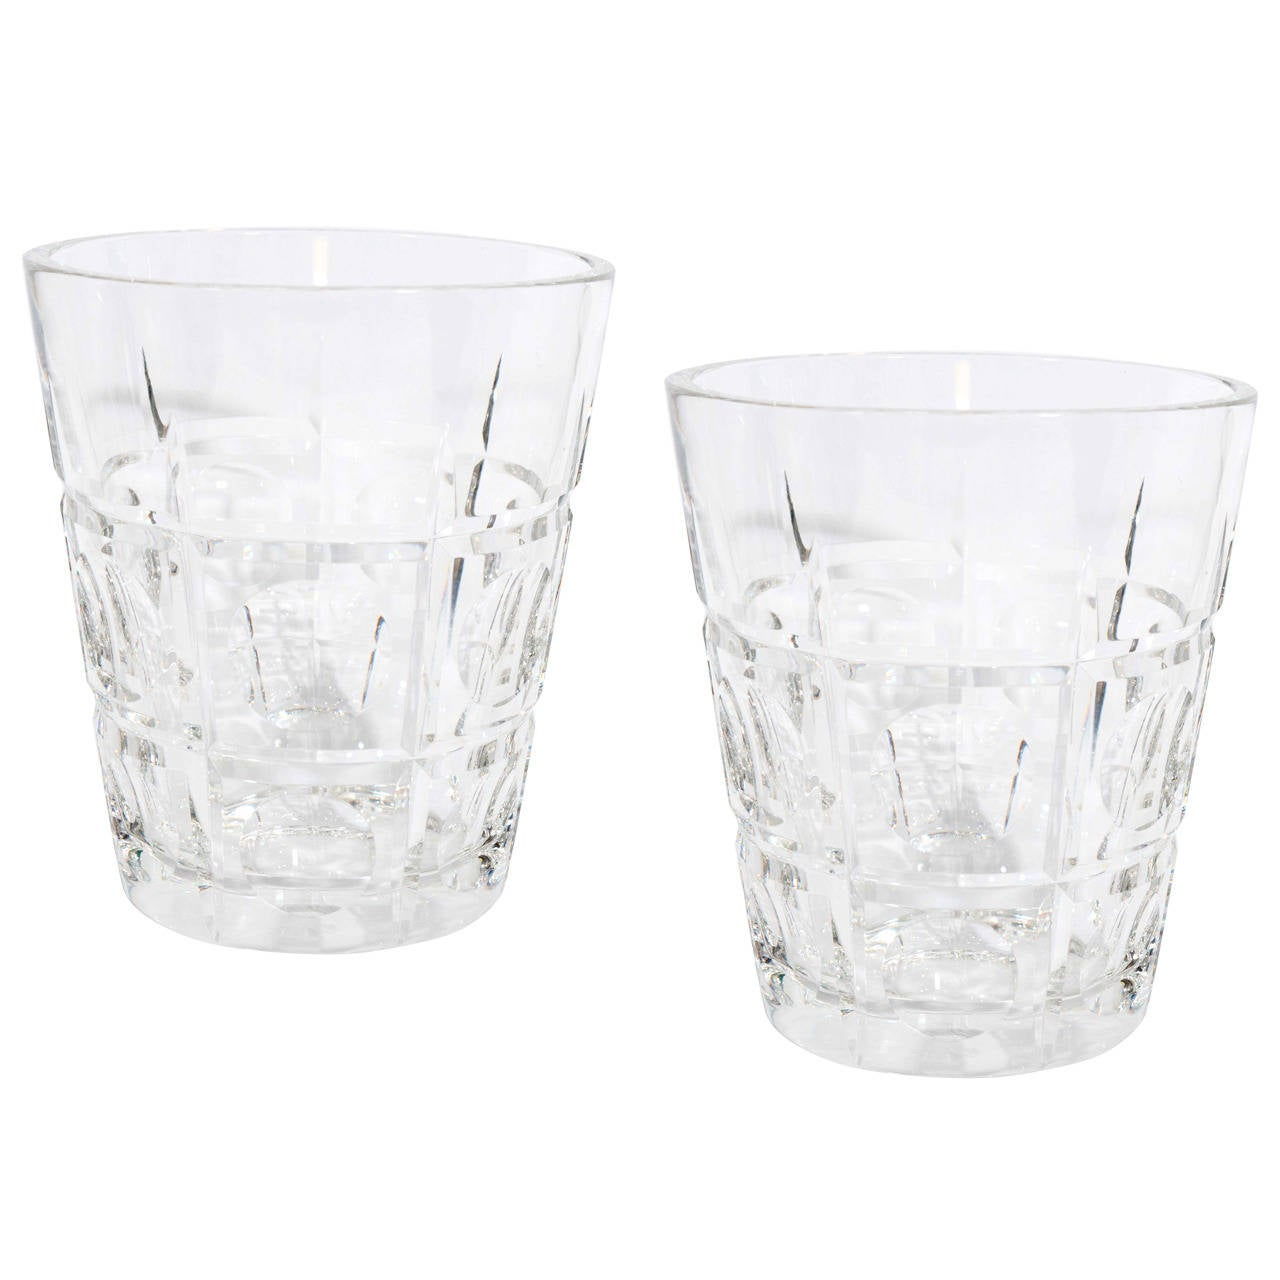 Vintage Pair of Sevres Crystal Vases or Ice Buckets